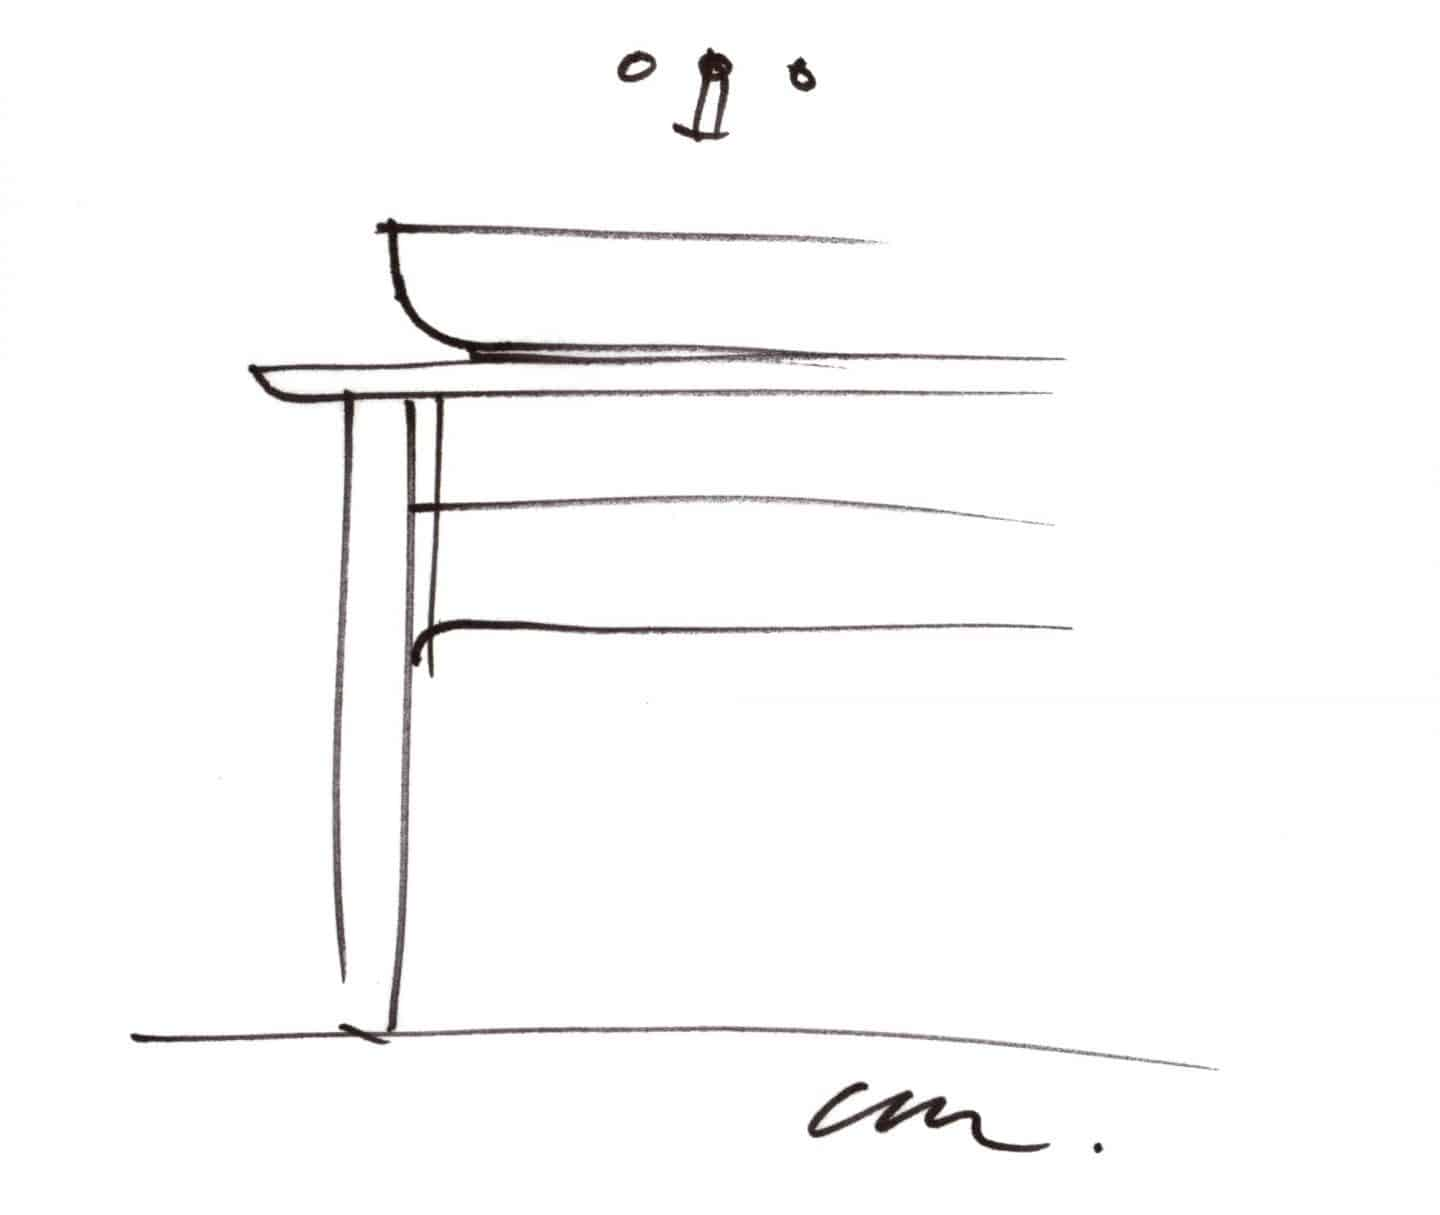 A sketch of the basin from The Luv collection by luxury bathroom brand Duravit.